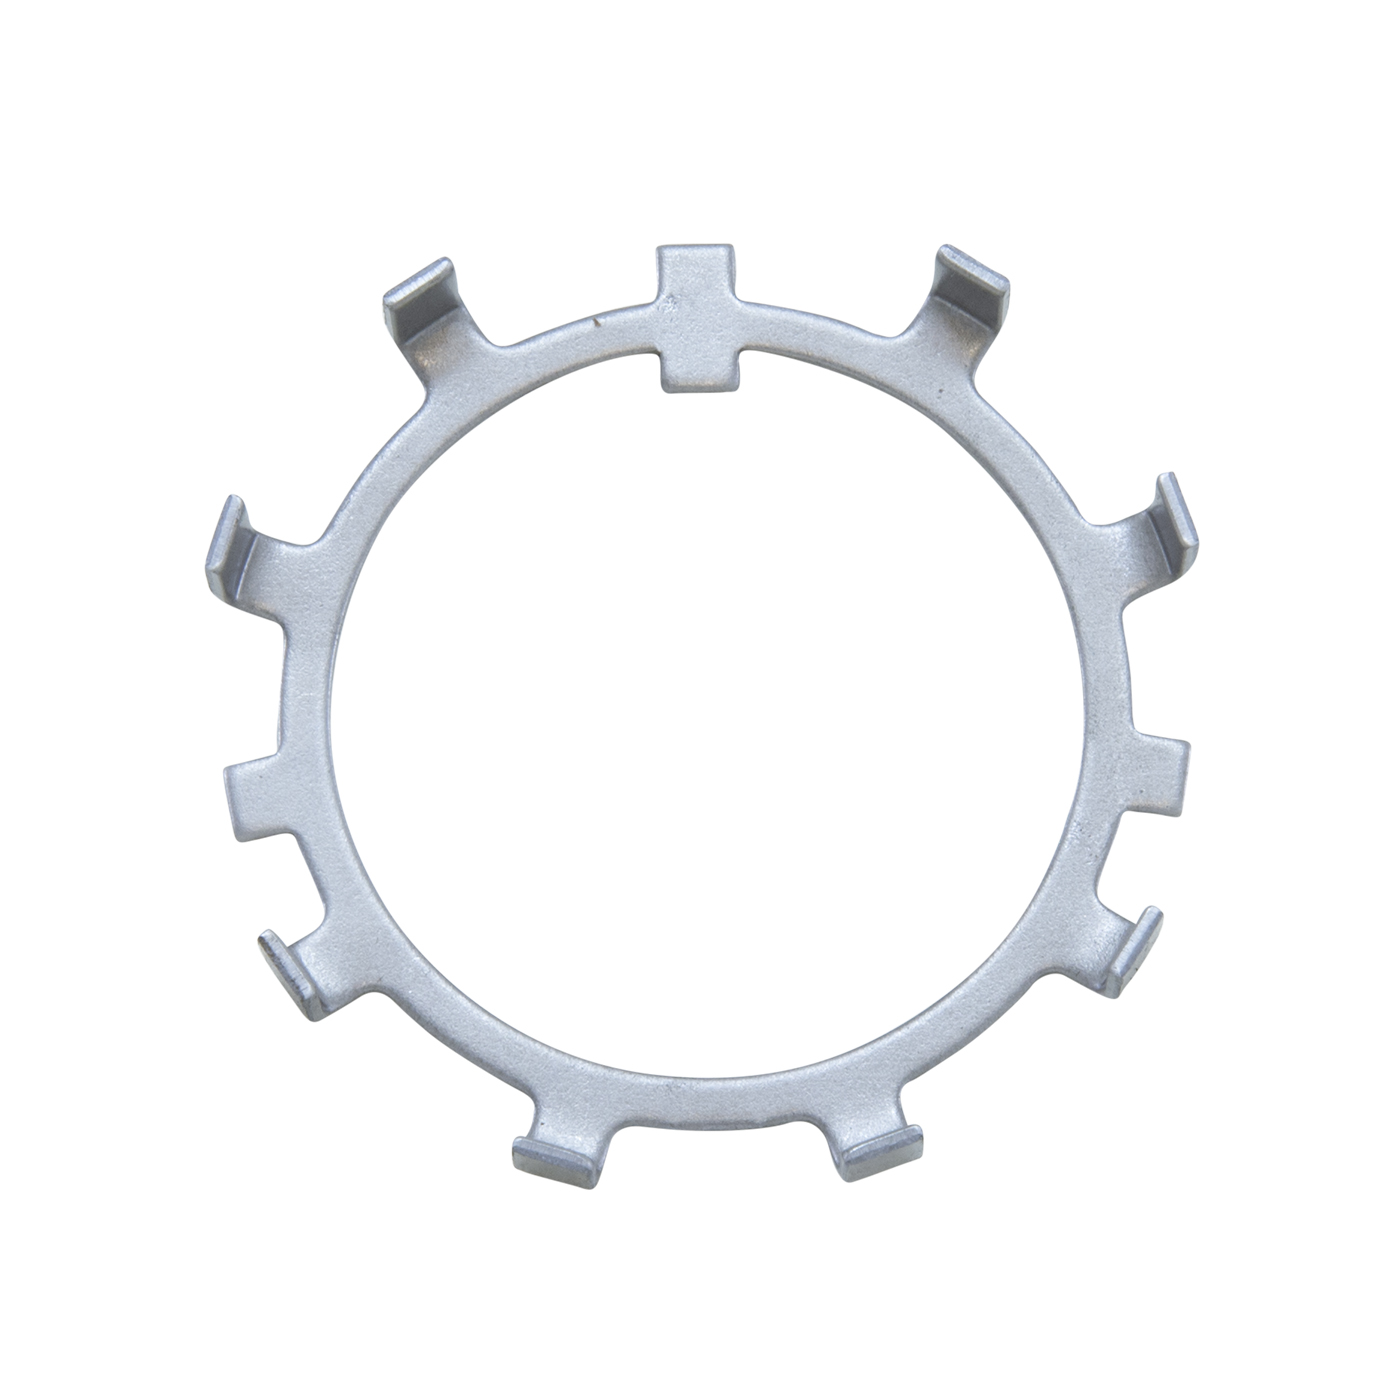 YSPSP-007 - Spindle nut retainer, 2.030